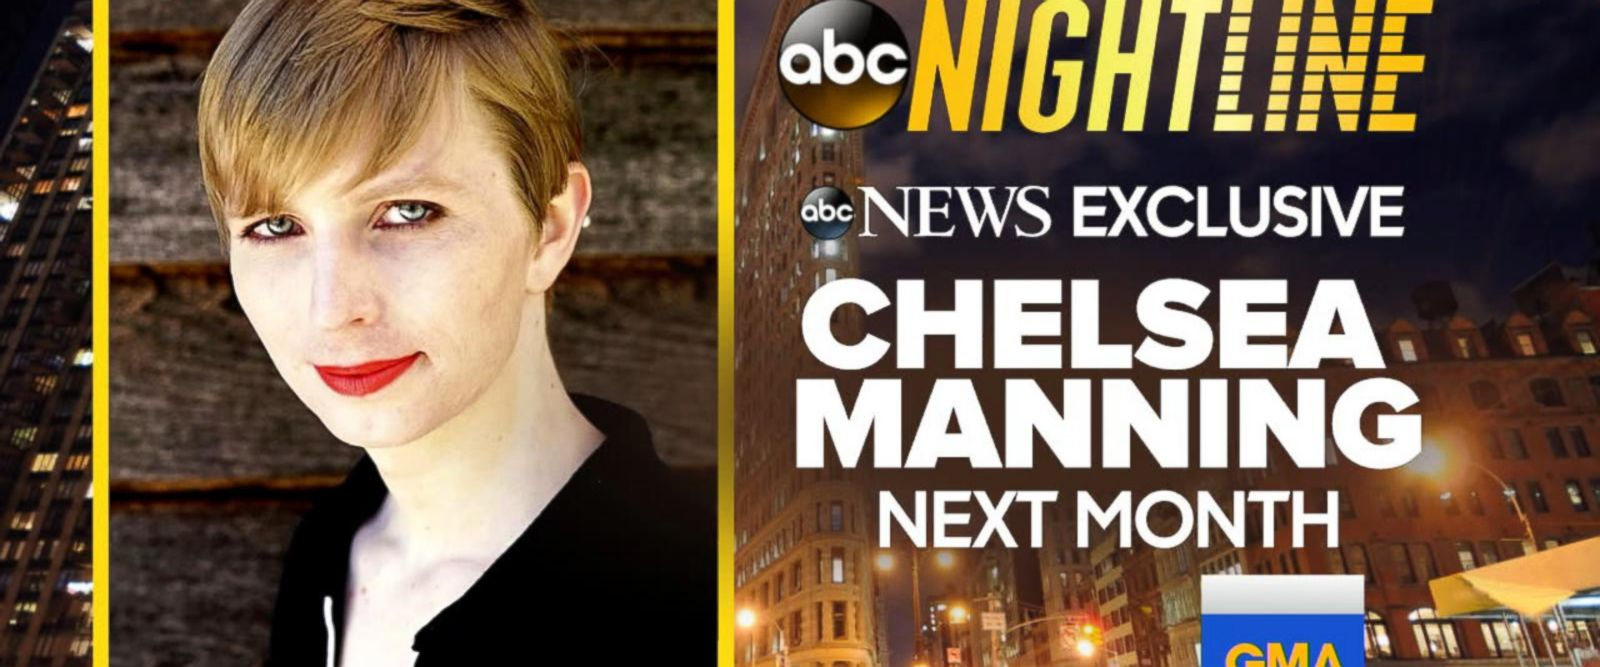 VIDEO: Chelsea Manning to speak in exclusive ABC News interview